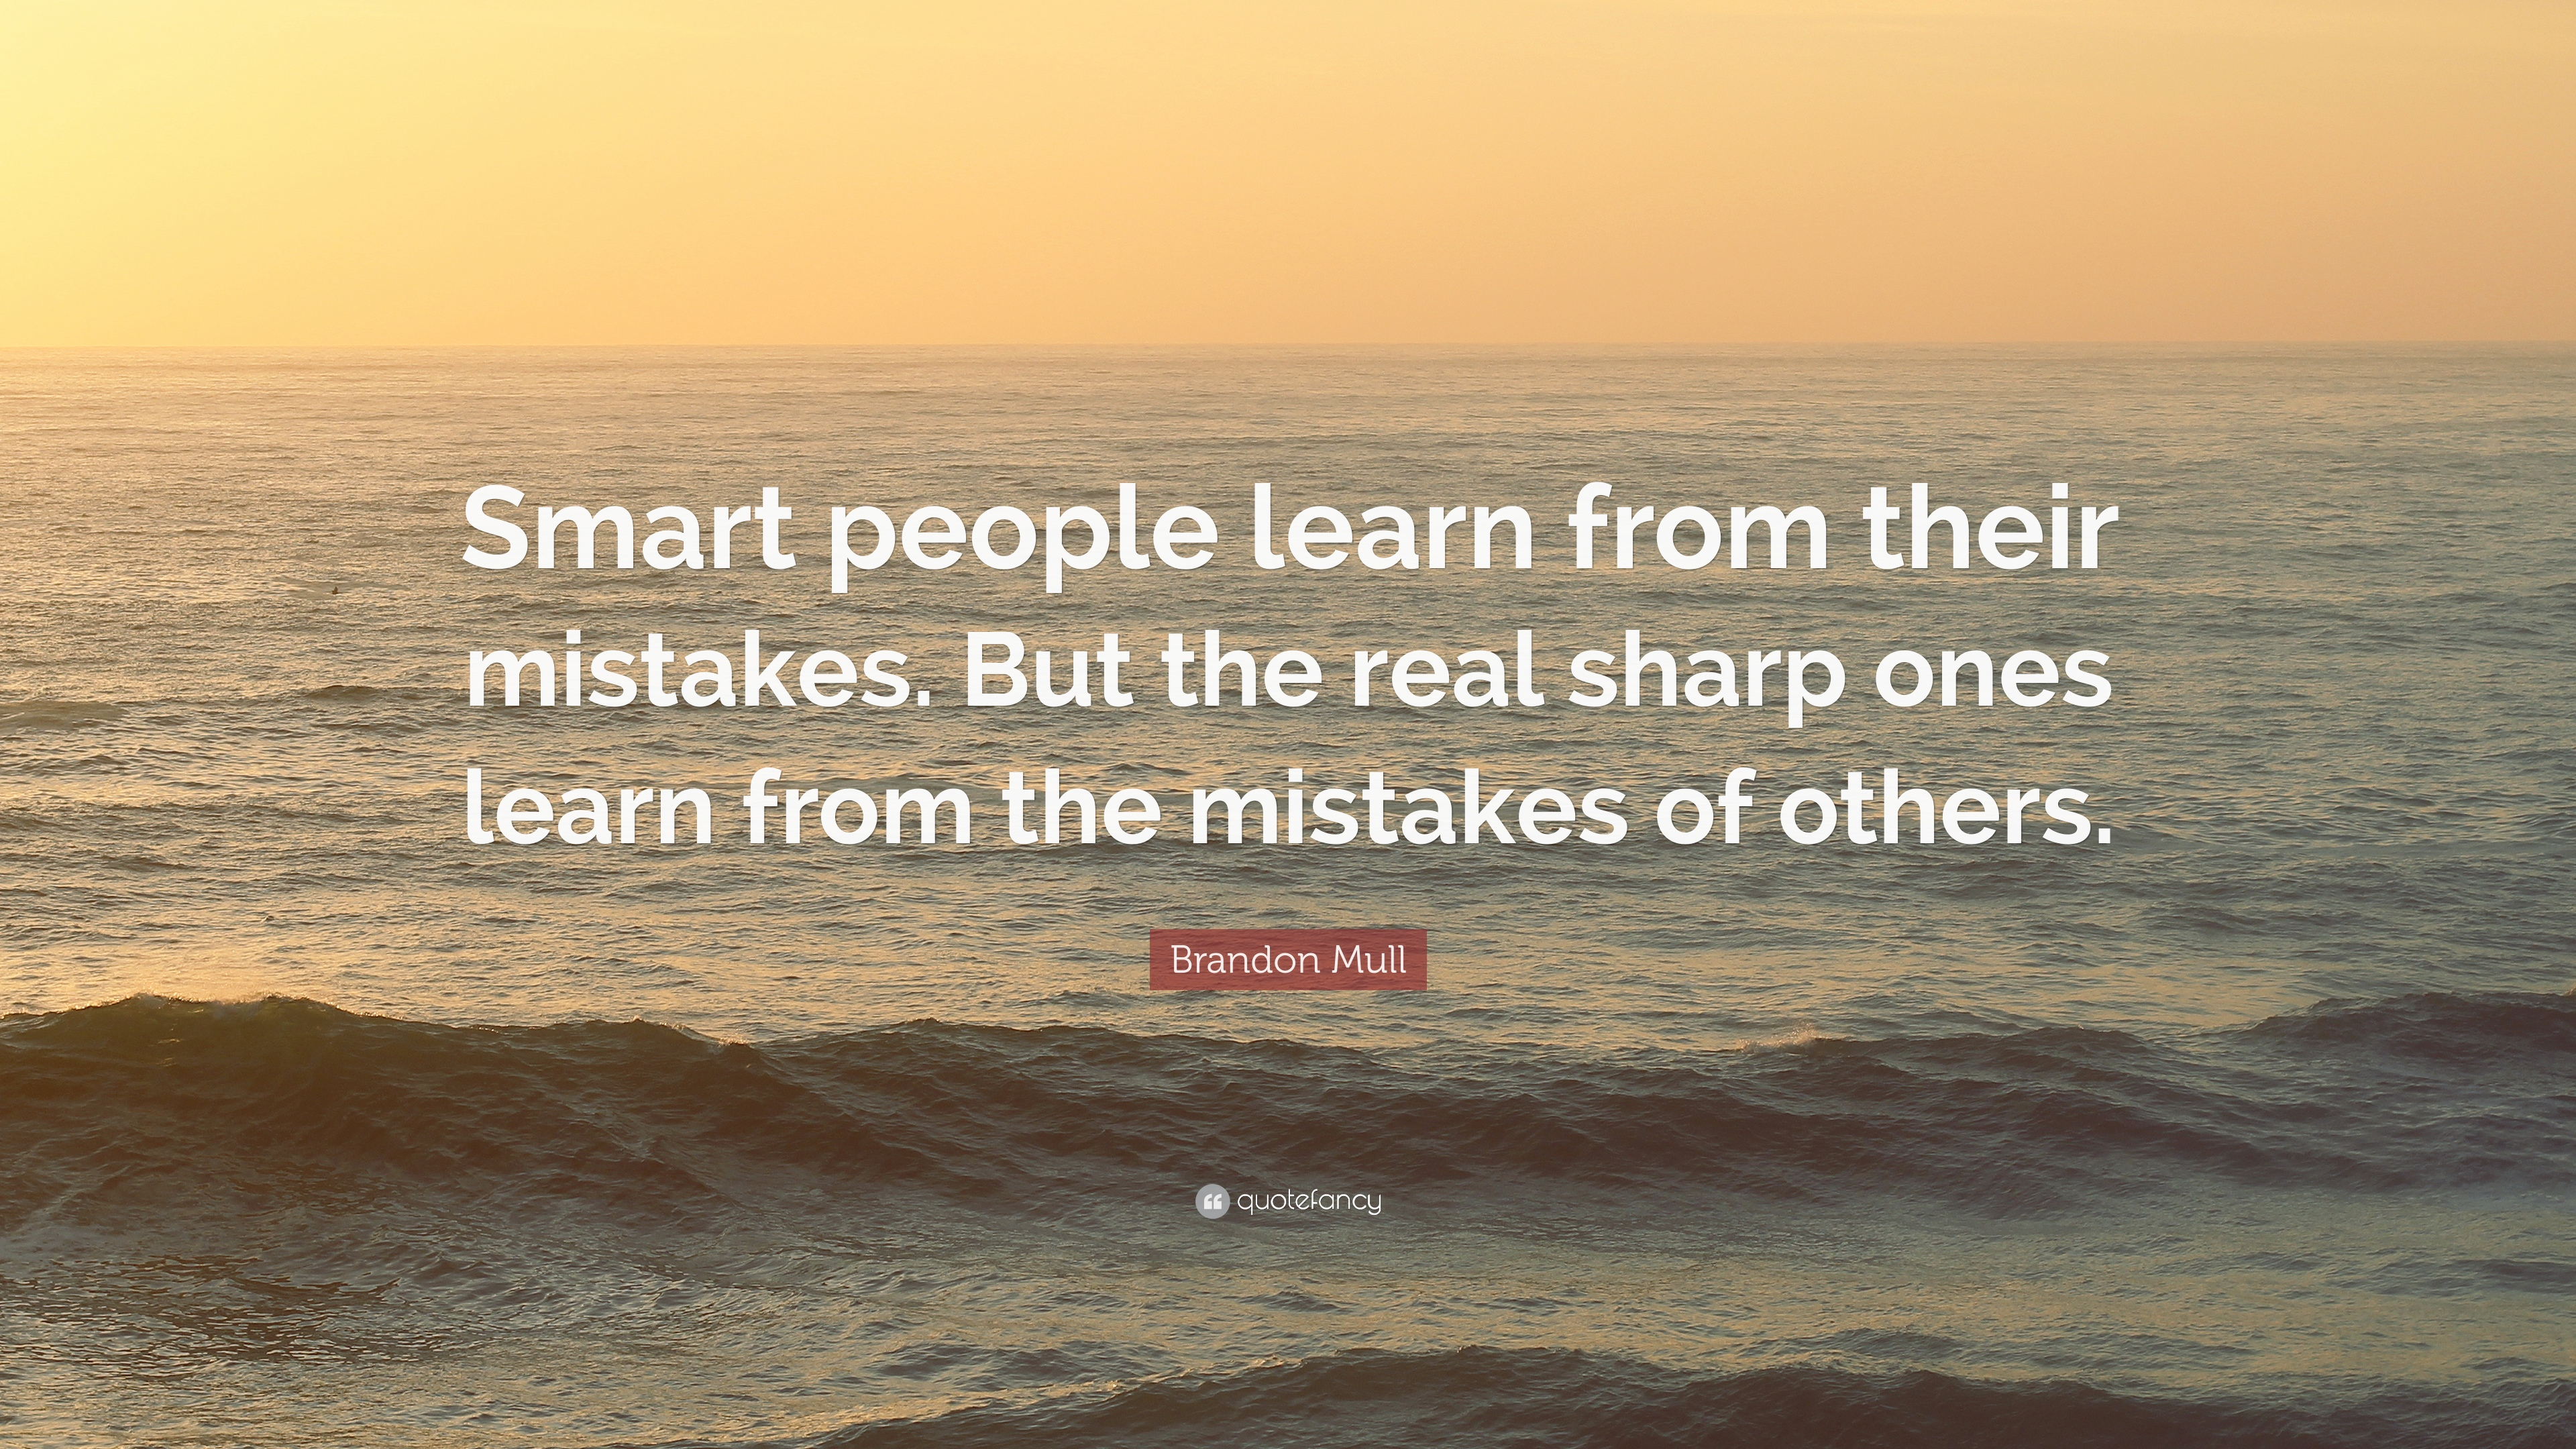 Learn from the mistakes of others. - Today Quotes